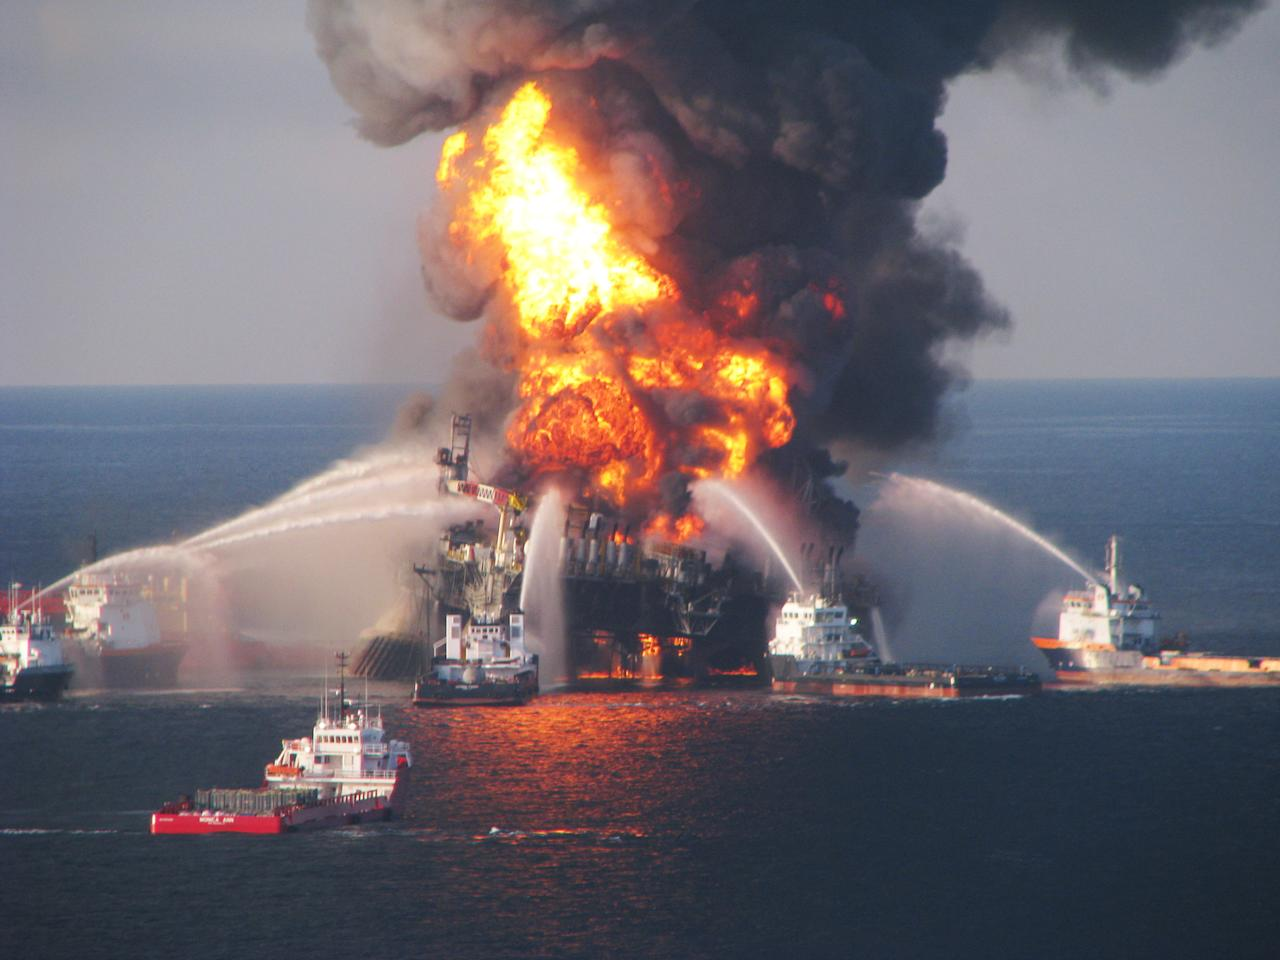 """Only once before had a news story taken the No. 1 slot in Top Searches on Yahoo — namely, the death of Michael Jackson. On April 20, 2010, the Deepwater Horizon oil rig exploded, killing 11. As we <a target=""""_blank"""" href=""""http://2010.yearinreview.yahoo.com/2010/us_top_10_searches/#Top%2010%20Searches"""">noted</a>, """"The gushing crude took 86 days to cap. The live feed from the  ocean floor became must-watch viewing, as massive online scrutiny  monitored best (and not so best) efforts to kill the well and stop the  worst spill in marine history."""" <ol class=""""yom-list""""><li>BP Oil Spill</li><li>World Cup</li><li>Miley Cyrus</li><li>Kim Kardashian</li><li>Lady Gaga</li><li>iPhone</li><li>Megan Fox</li><li>Justin Bieber</li><li>American Idol</li><li>Britney Spears</li></ol>A whopping <a target=""""_blank"""" href=""""http://2010.yearinreview.yahoo.com/2010/blog/13485/shortcuts-to-2010/"""">144 articles</a> only skimmed the Search stream in 2010. <a target=""""_blank"""" href=""""http://2010.yearinreview.yahoo.com/2010/us_natural_disasters/#Natural%20Disasters"""">Monumental natural disasters</a> included earthquakes in Haiti, Chile and China, floods in Pakistan and Nashville; an Iceland volcano even grounded global air traffic. Yet <a target=""""_blank"""" href=""""http://2010.yearinreview.yahoo.com/2010/us_natural_disasters/#Natural%20Disasters"""">tales of heroism</a> amazed us, from the Deepwater Horizon crew, the Chilean miners trapped underground, and the miraculous """"return"""" of kidnapped young girl Jaycee Dugard hiding in plain sight, grown up with her two children."""